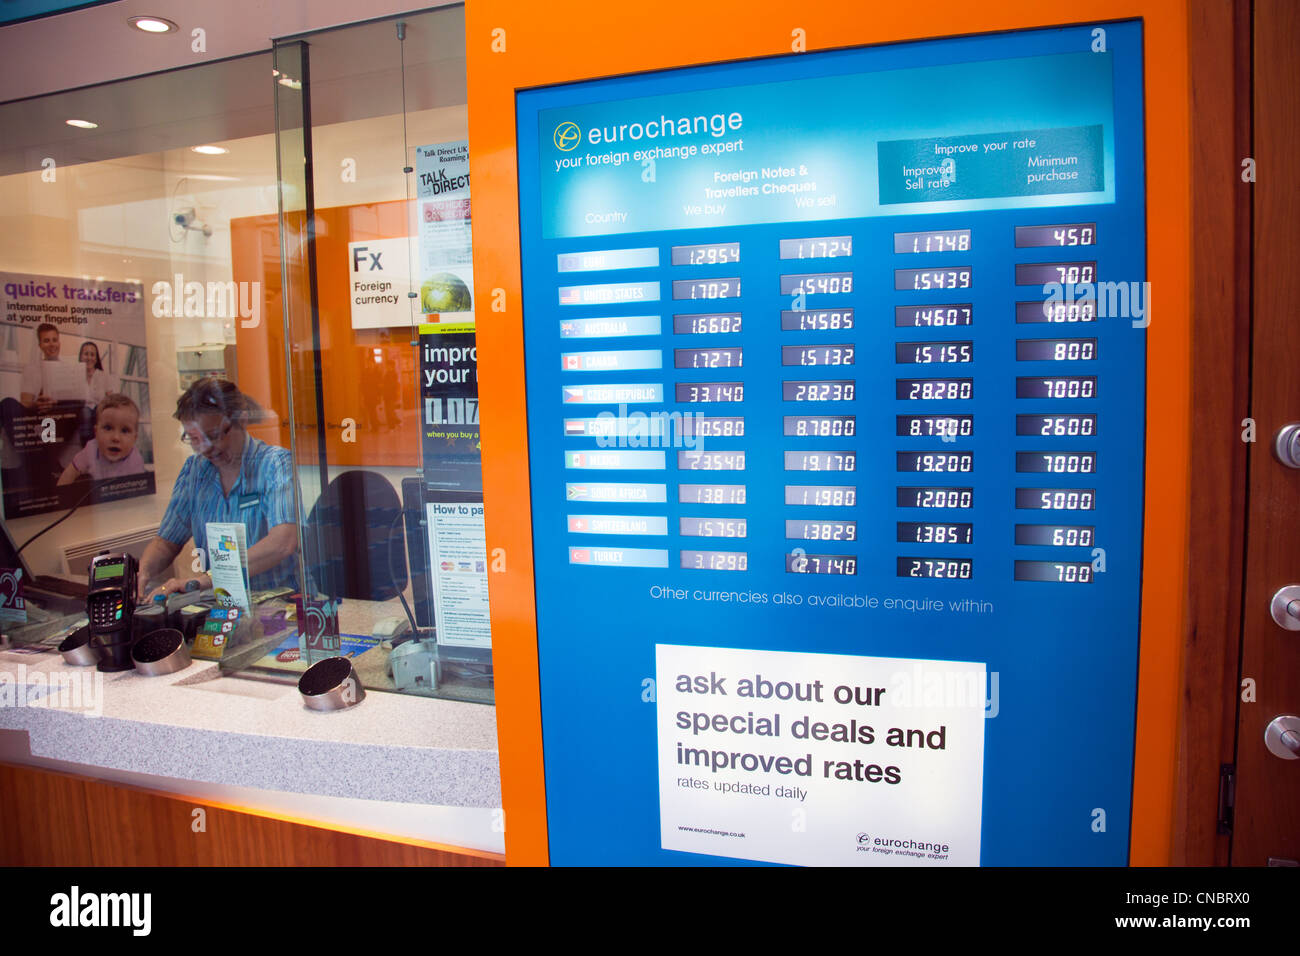 eurochange money exchange shop in victoria centre grimsby town stock photo 47588744 alamy. Black Bedroom Furniture Sets. Home Design Ideas